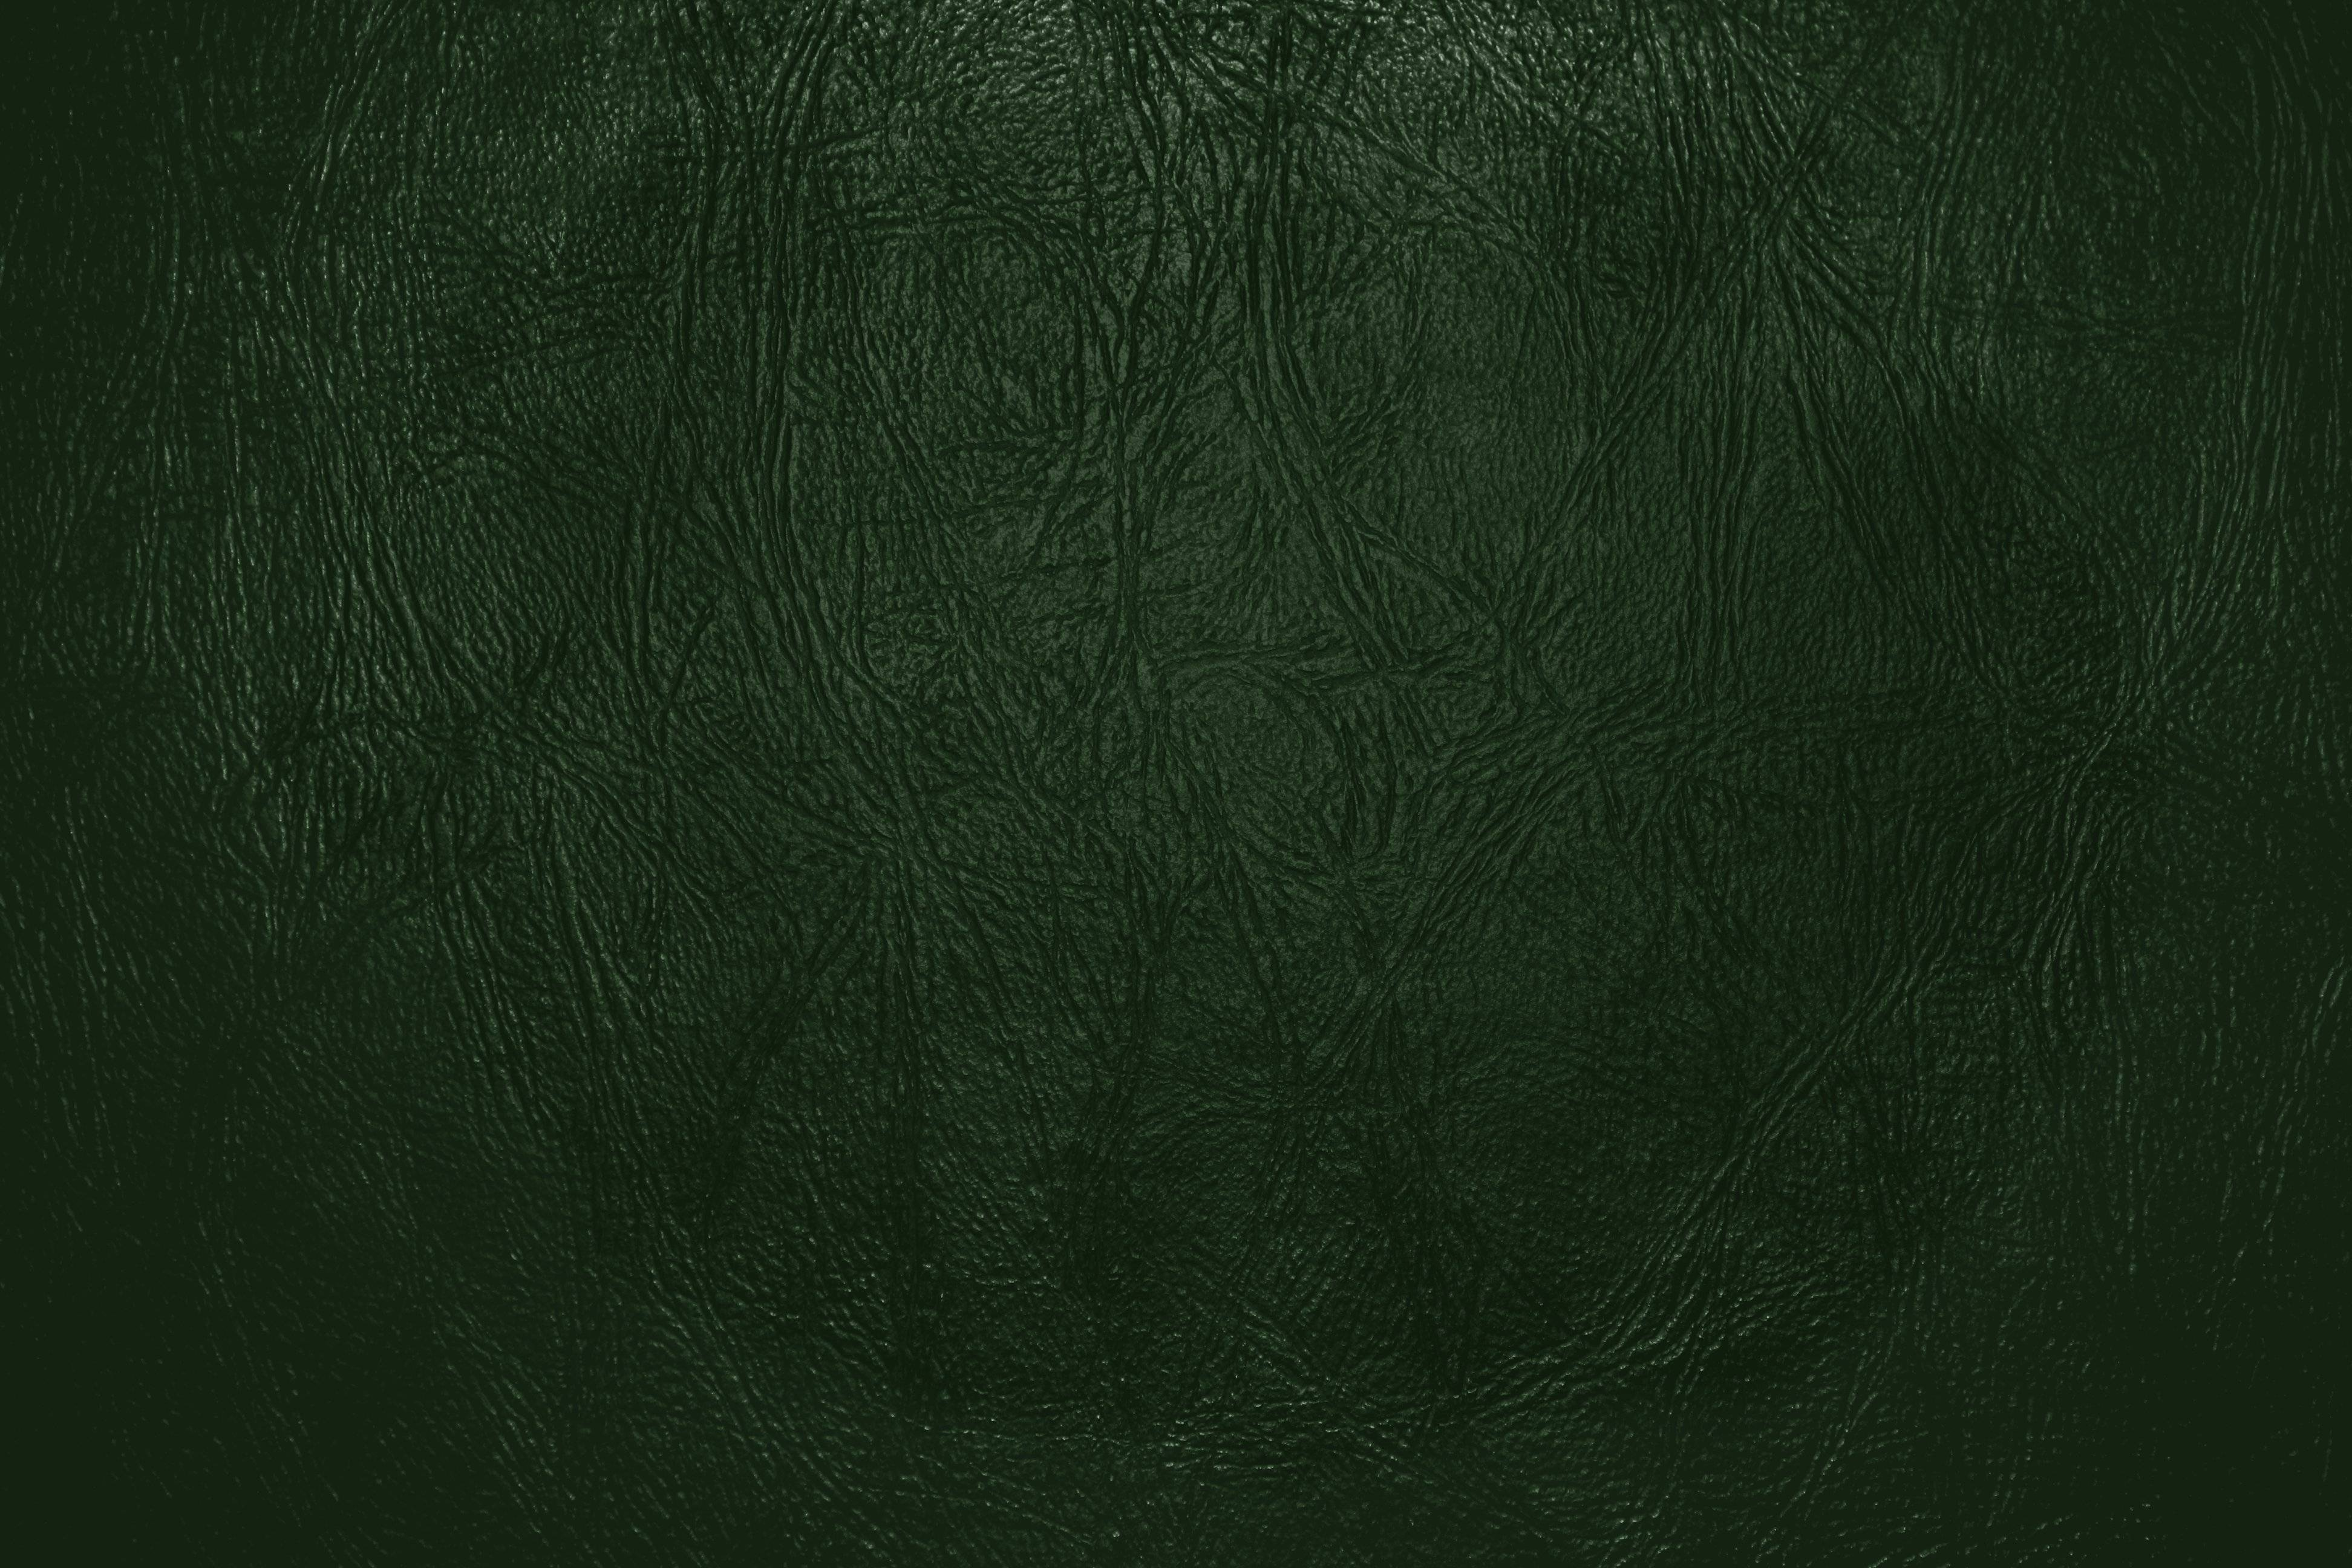 Forest Green Backgrounds 3888x2592